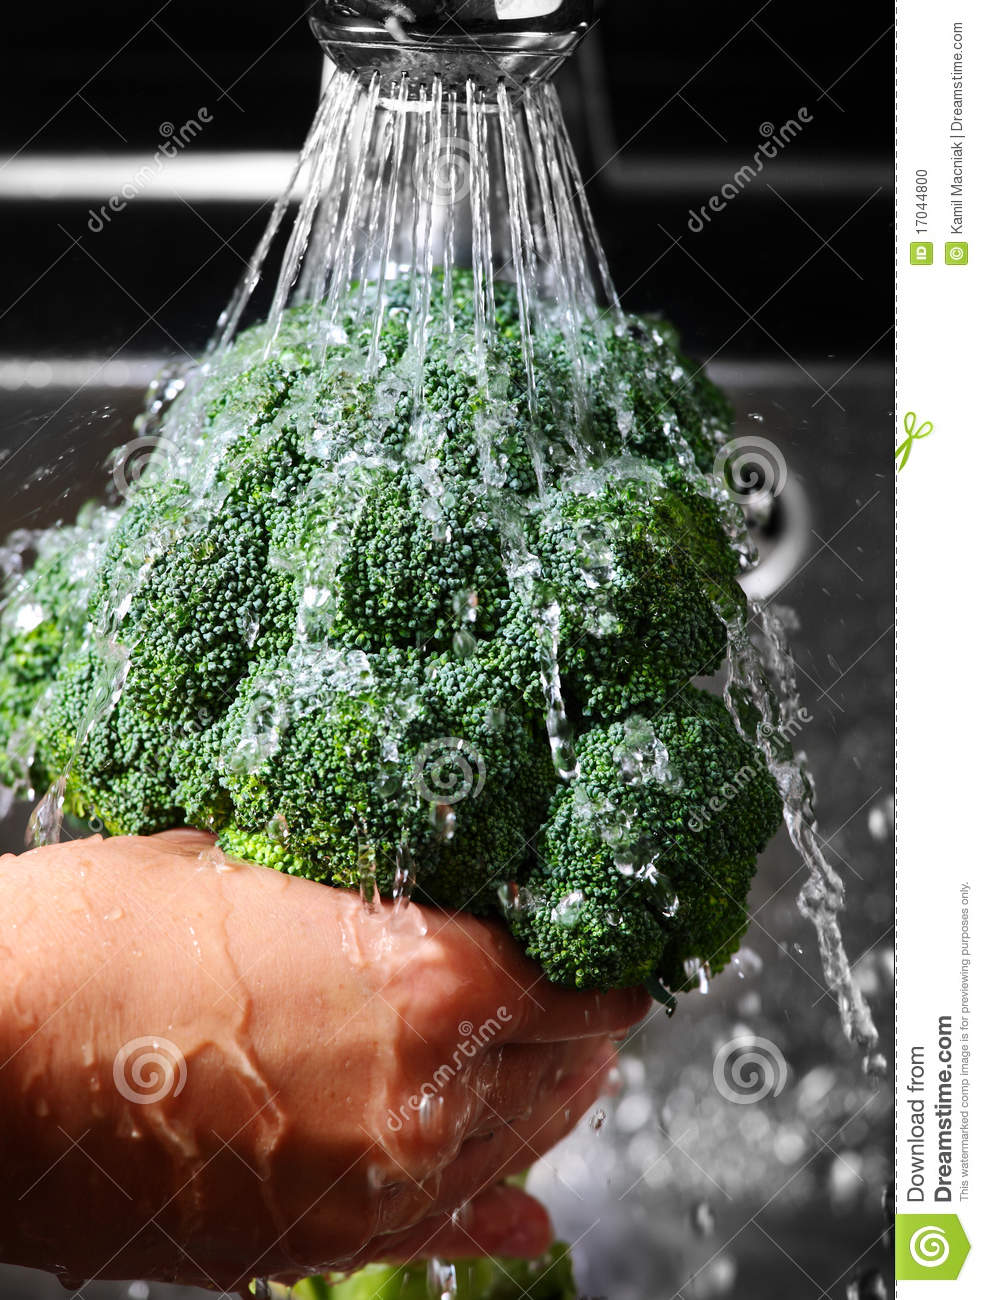 Washing Broccoli Stock Photo Image Of Freshness Broccoli